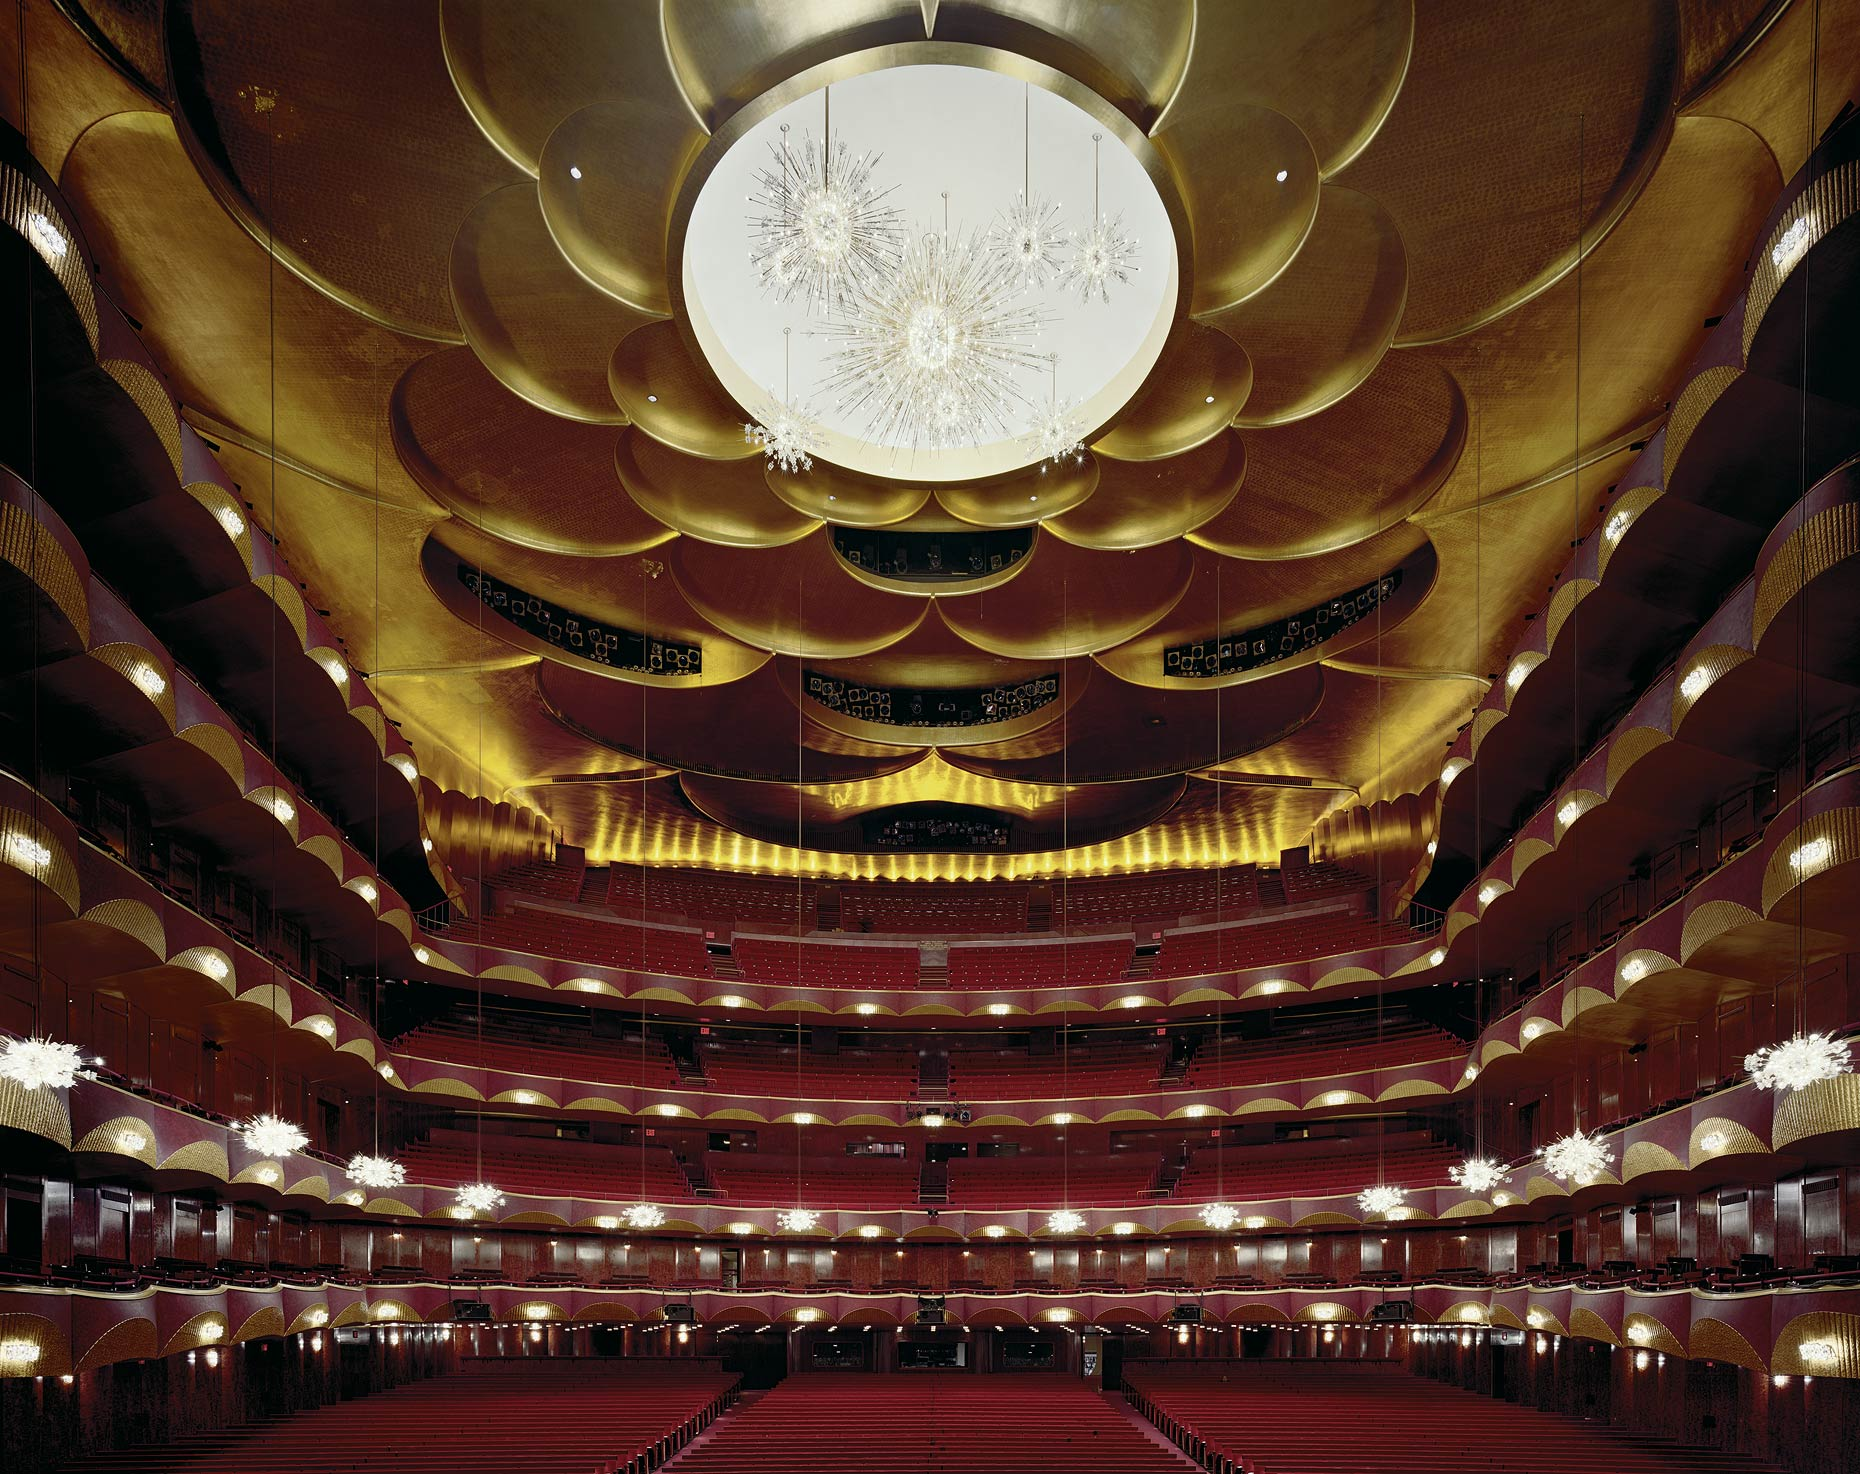 The Metropolitan Opera, New York, United States, 2008